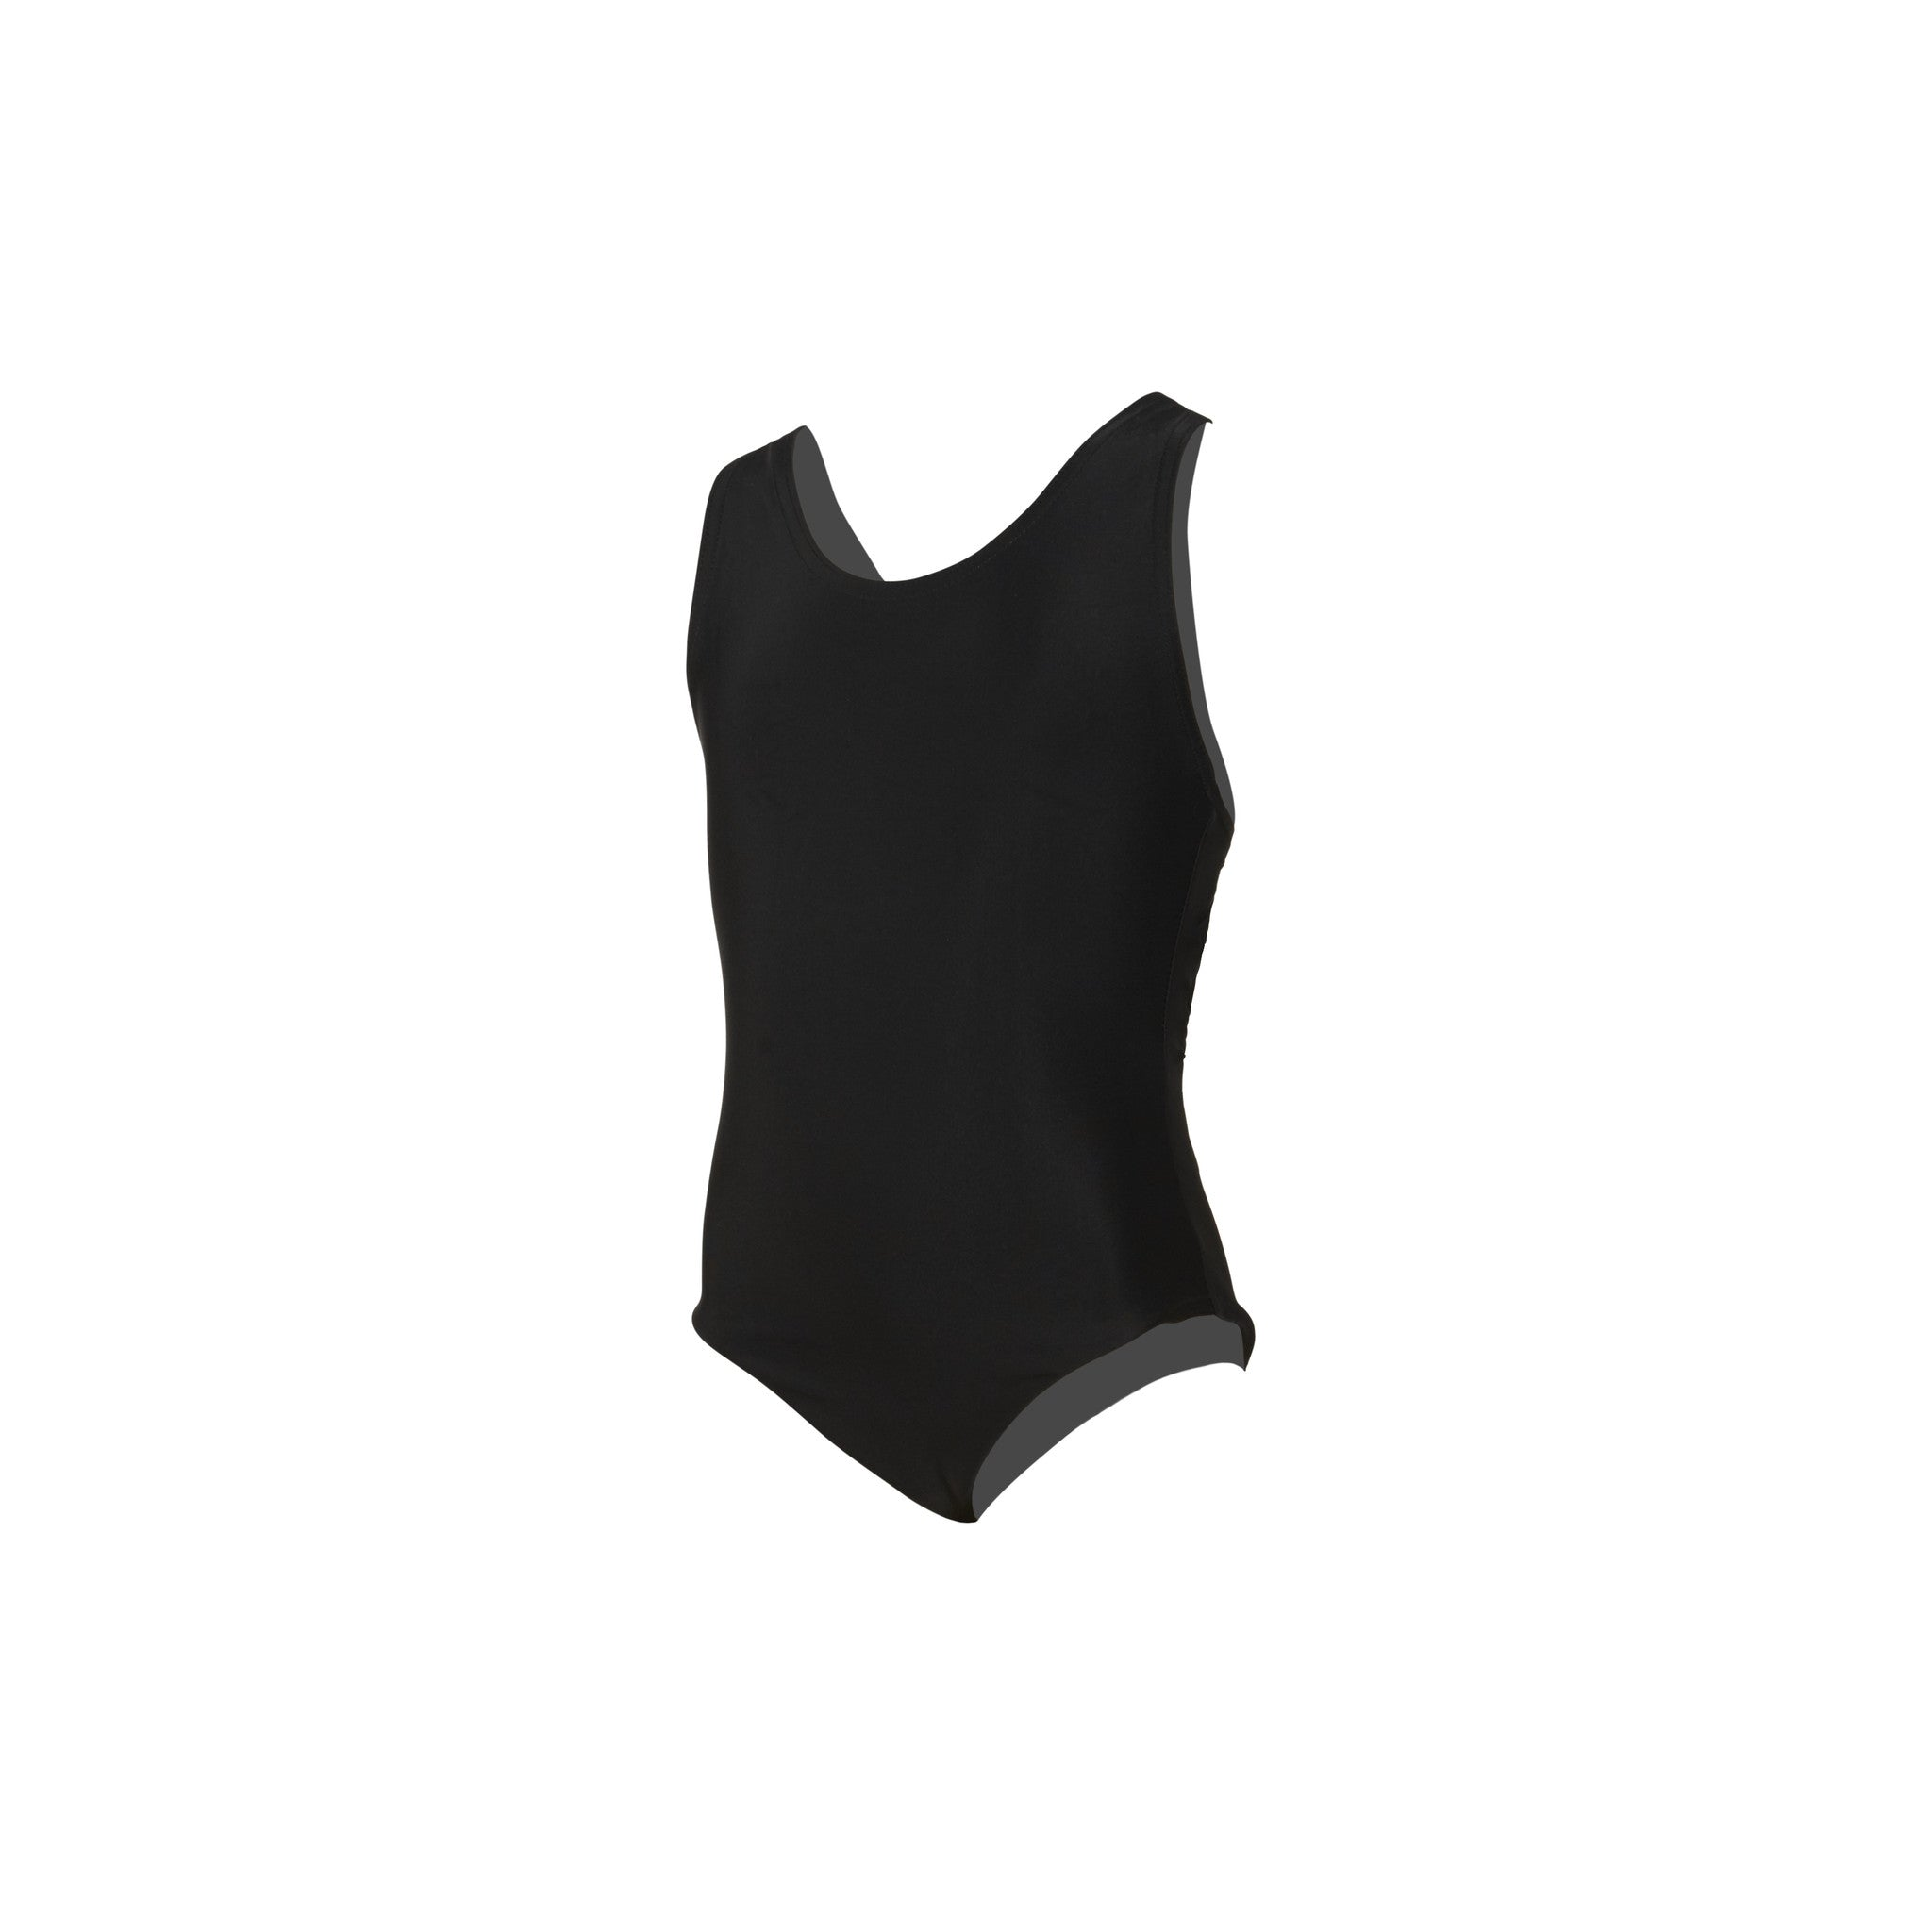 Pre-Prep / Prep Girls Black Swimming Costume